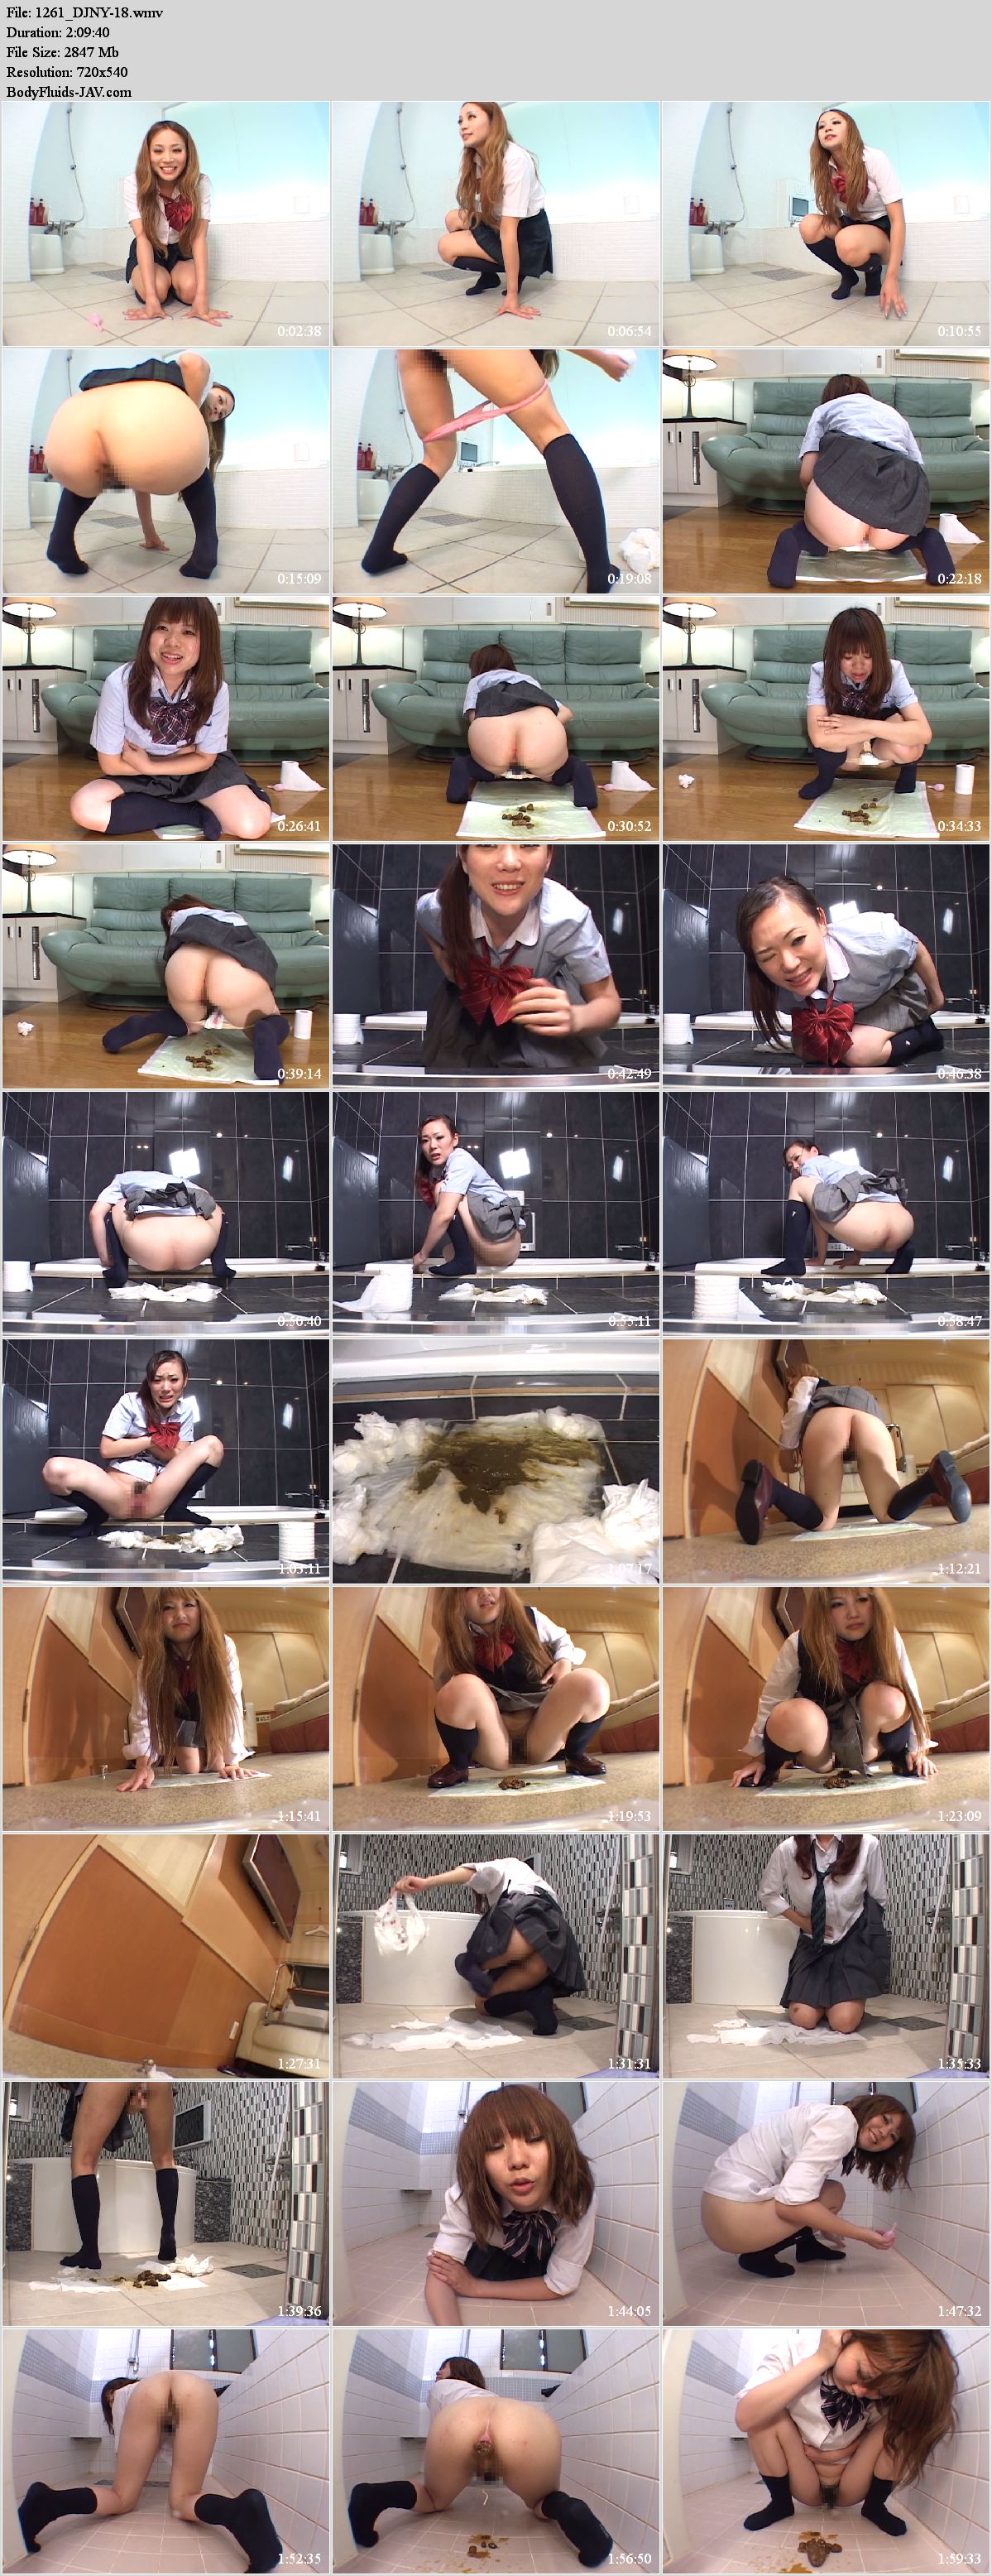 DJNY-18 Girls self filmed to shit and excrement.